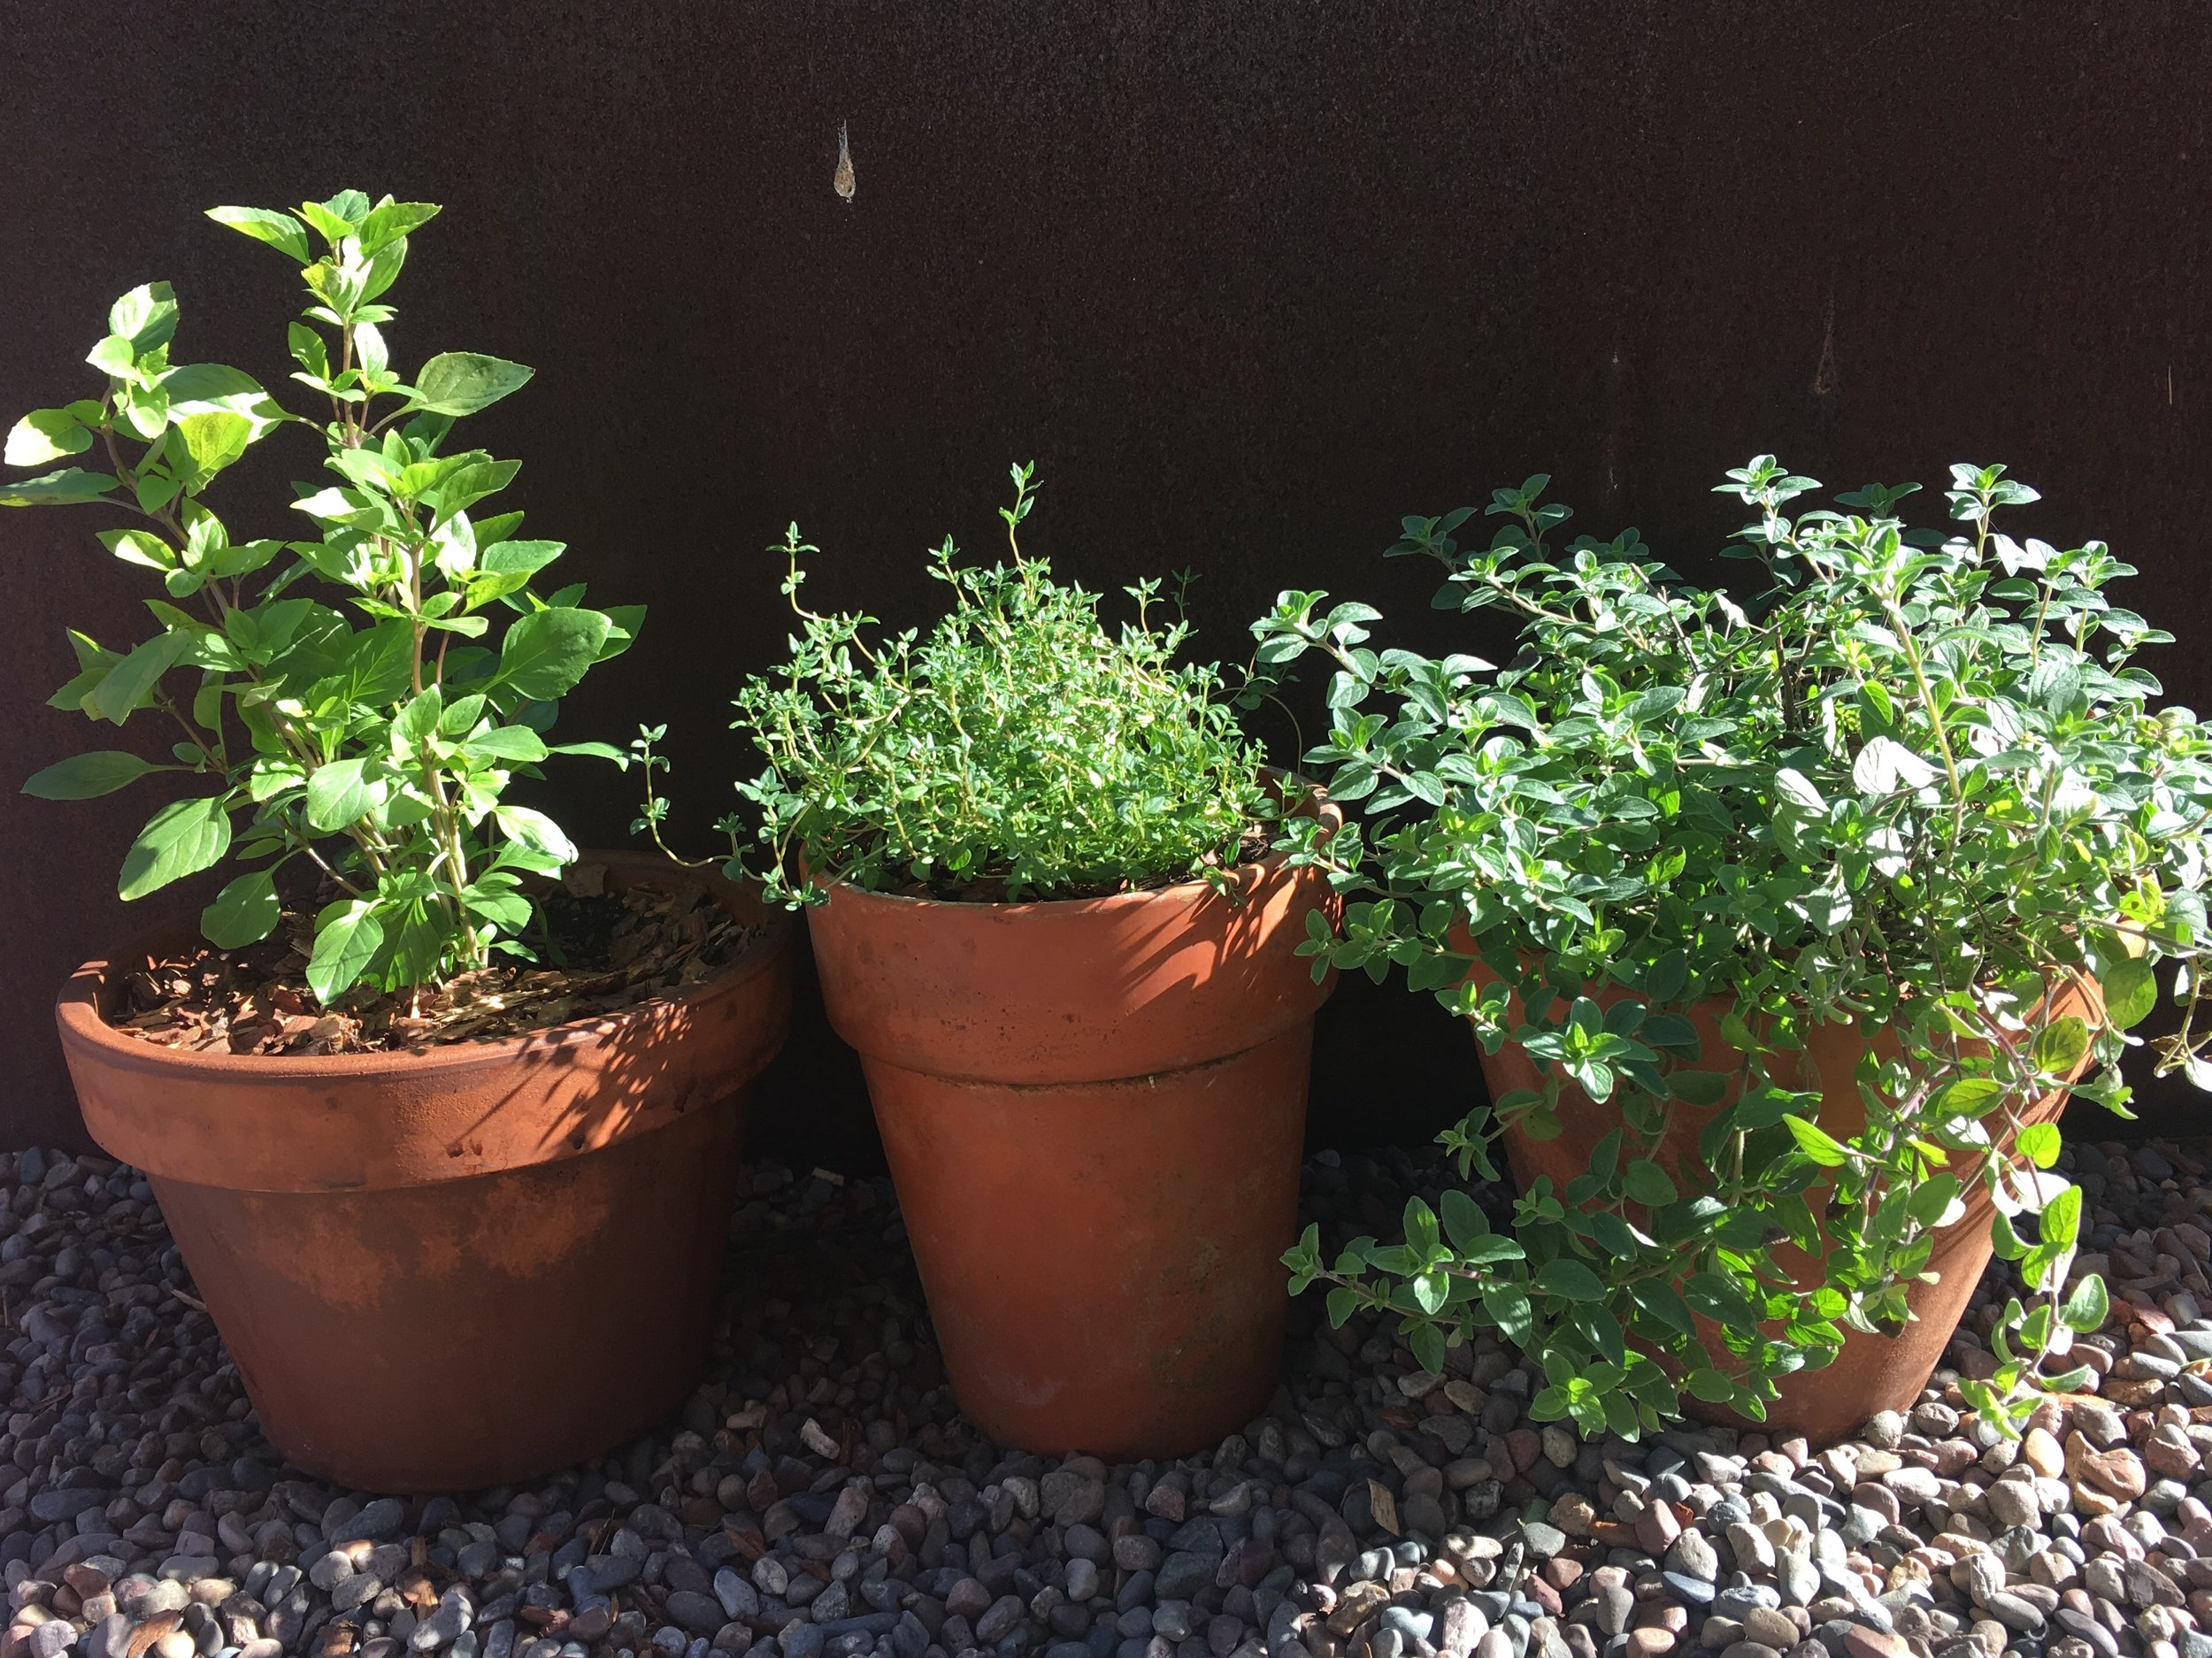 Greek basil, thyme and oregano in the winter light